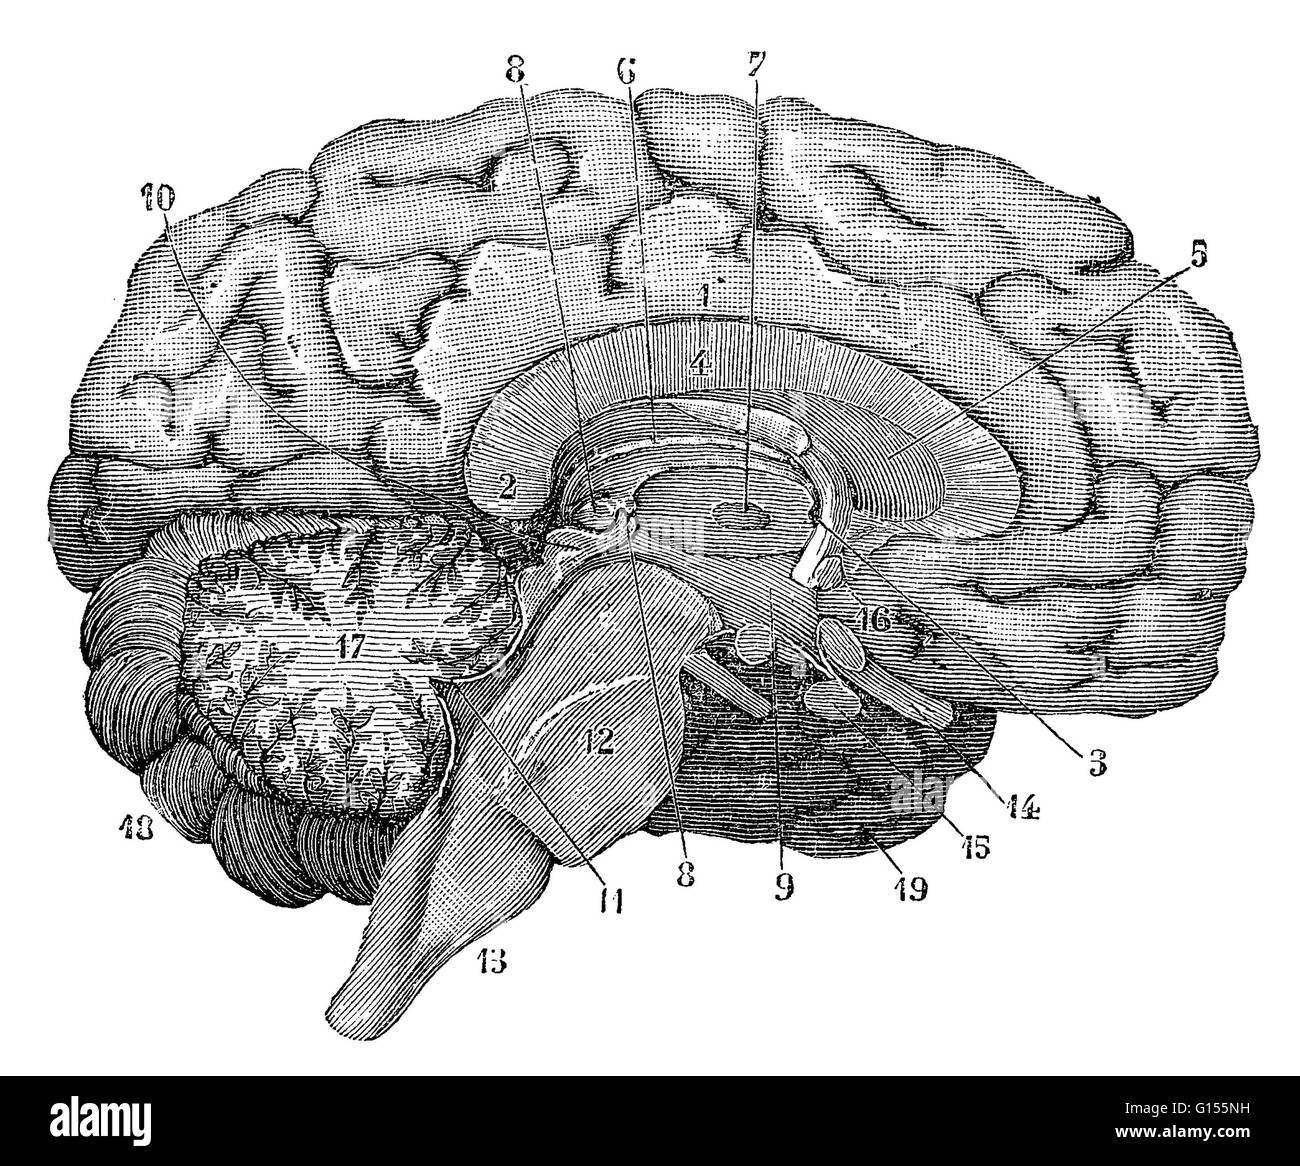 Illustration of a cross-section of the brain showing parts such as the cerebrum, cerebellum, corpus callosum, medulla - Stock Image